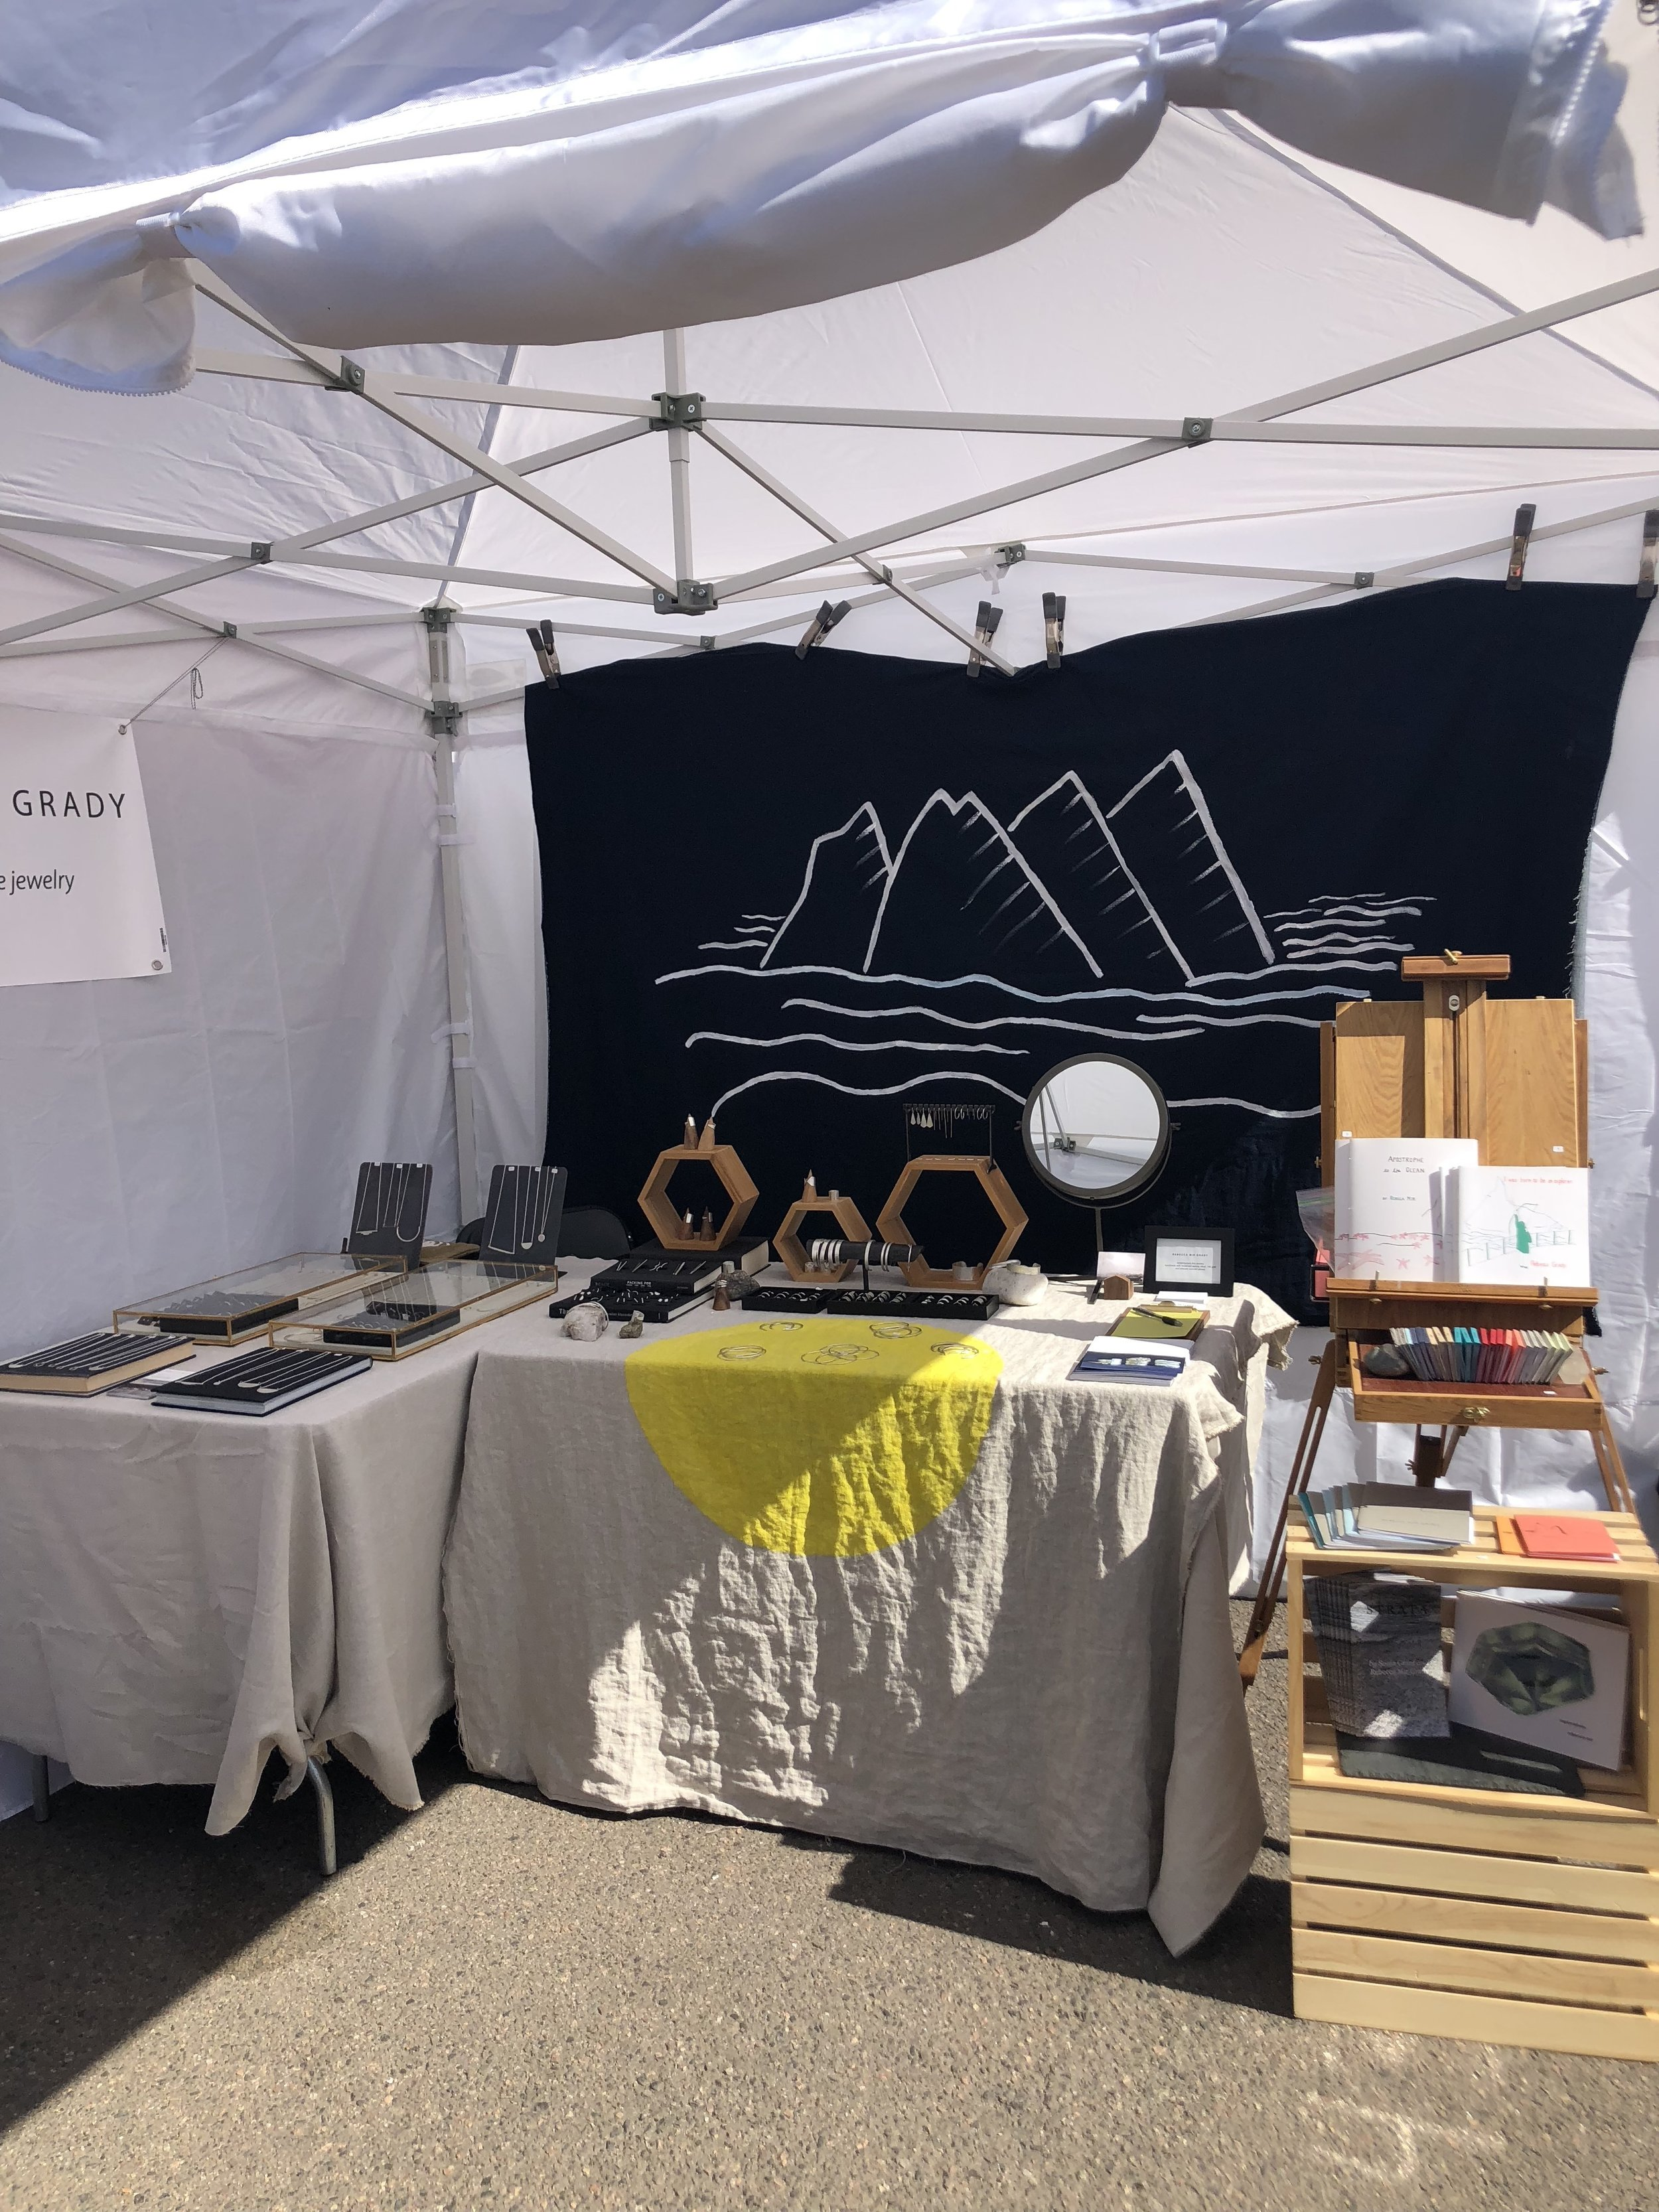 This turned out to be the best layout for a corner booth at the fair, with least sun at all times of day on the jewelry and books. And as it turns out the books get hot too!